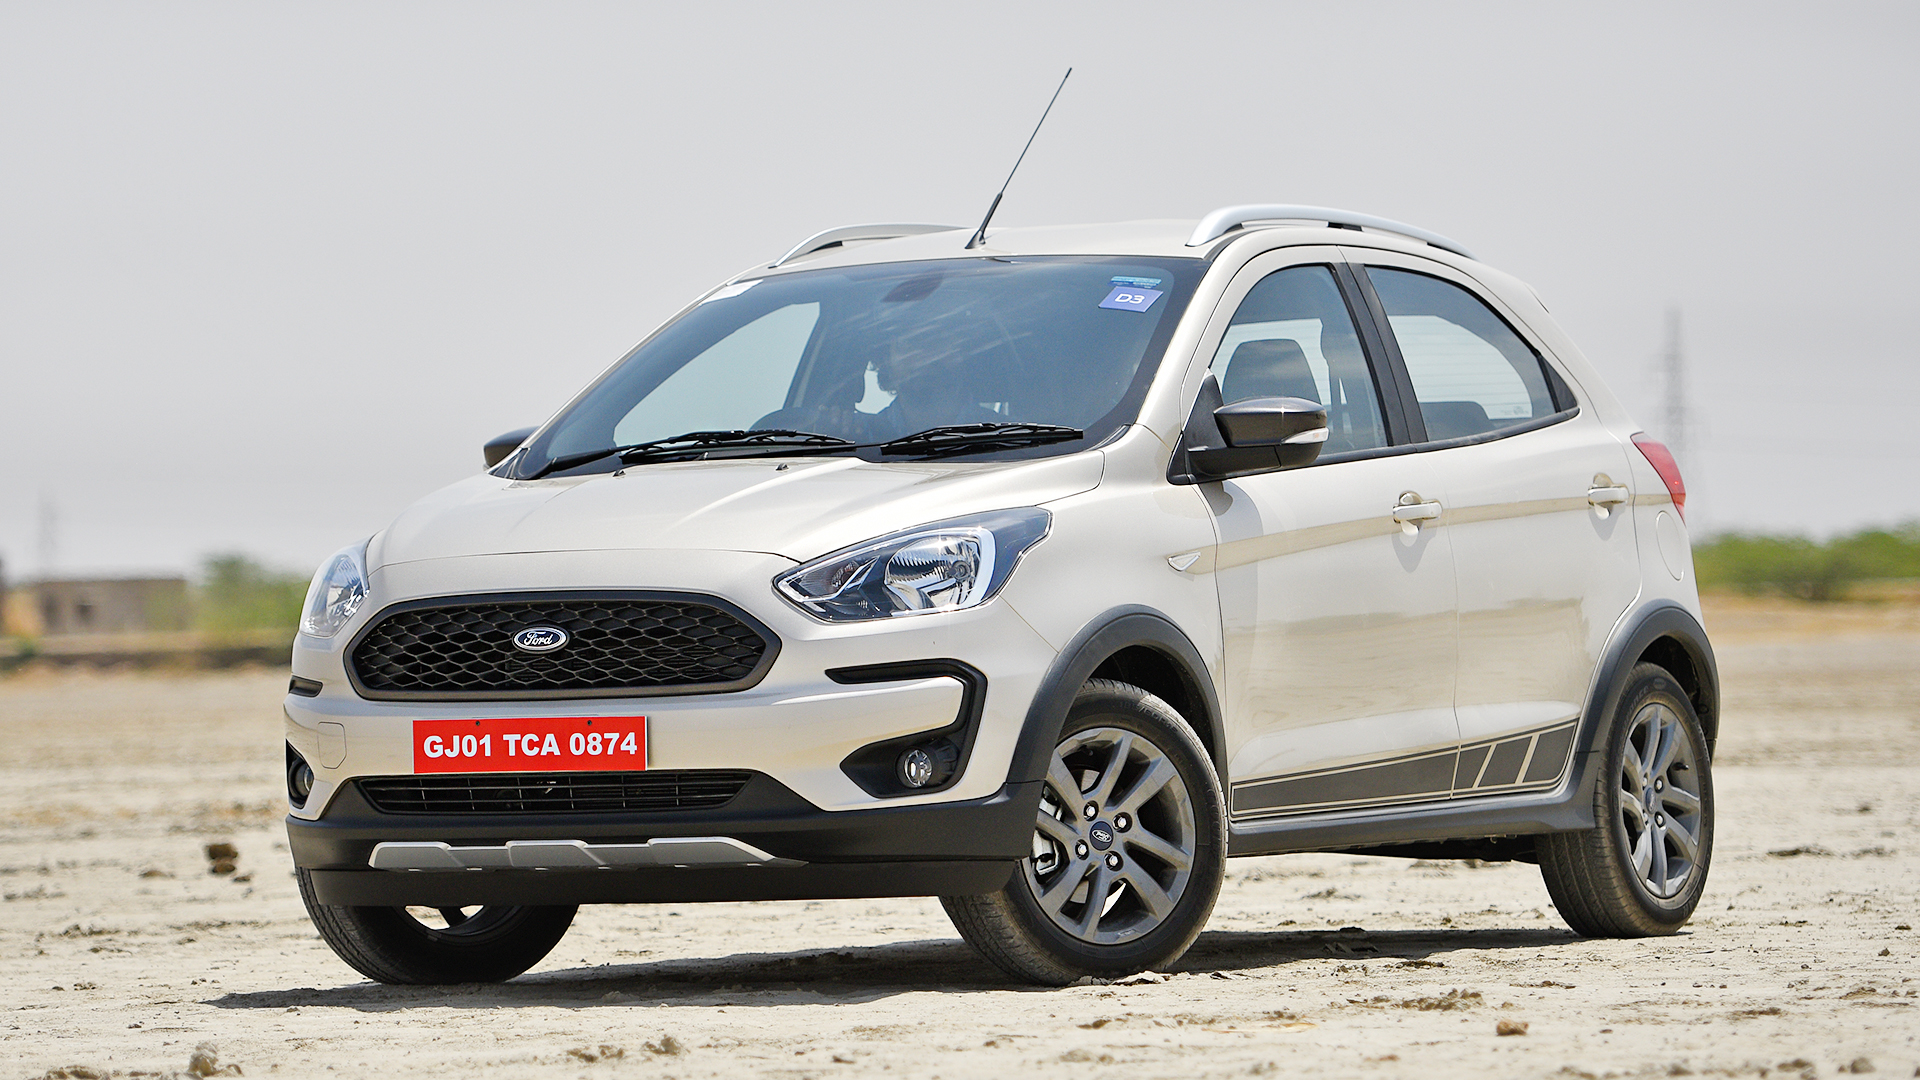 Ford Freestyle 2020 1.5 Diesel Titanium